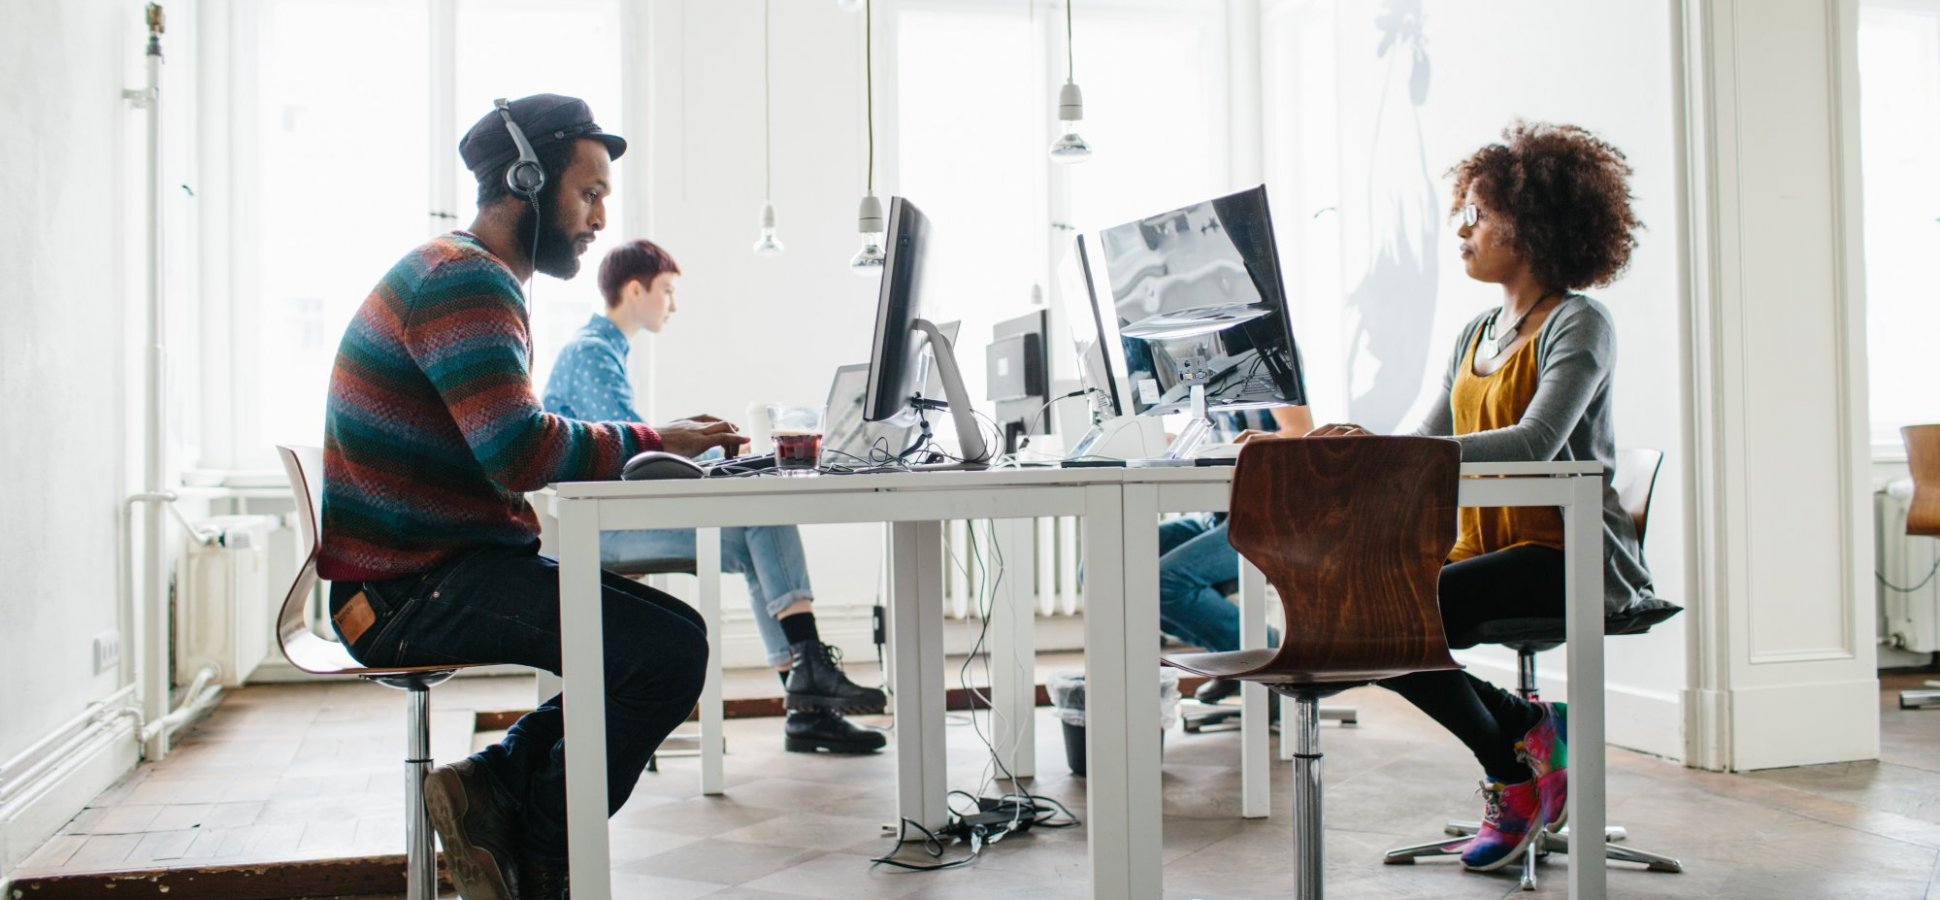 If You're Founding a Growth-Focused Startup, Bootstrapping Probably Isn't for You